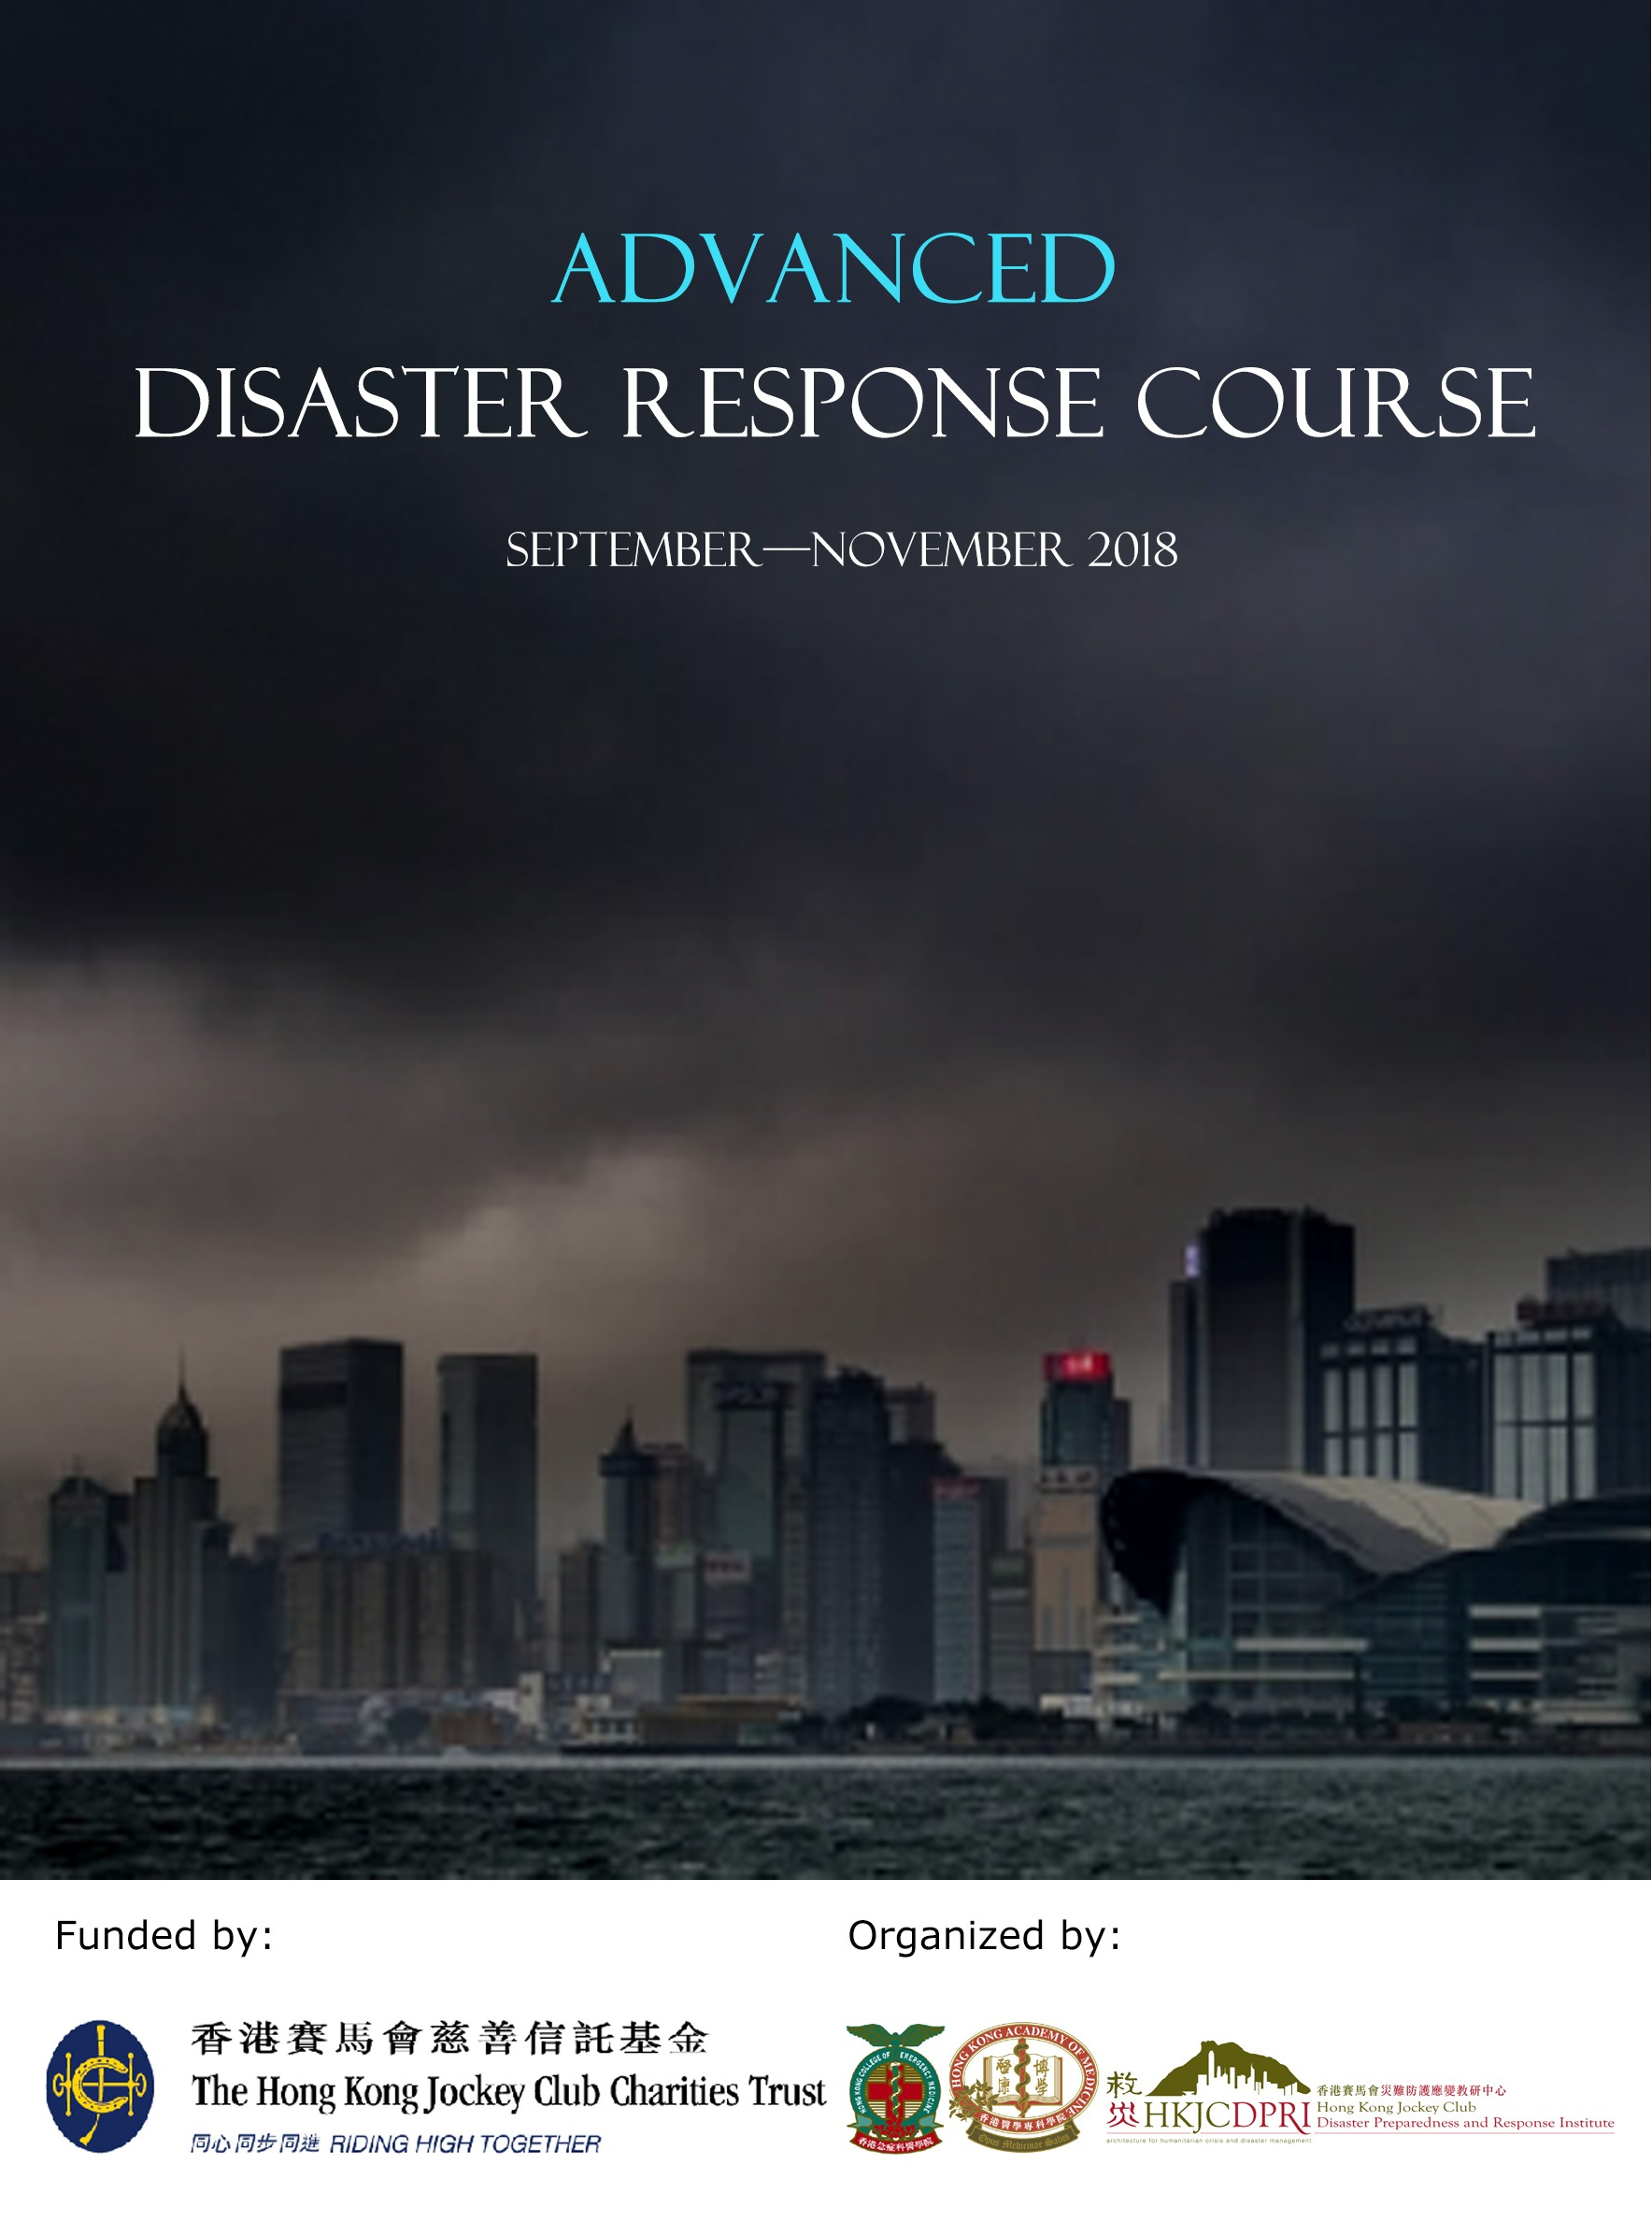 Advanced Disaster Response Course, September to November 2018